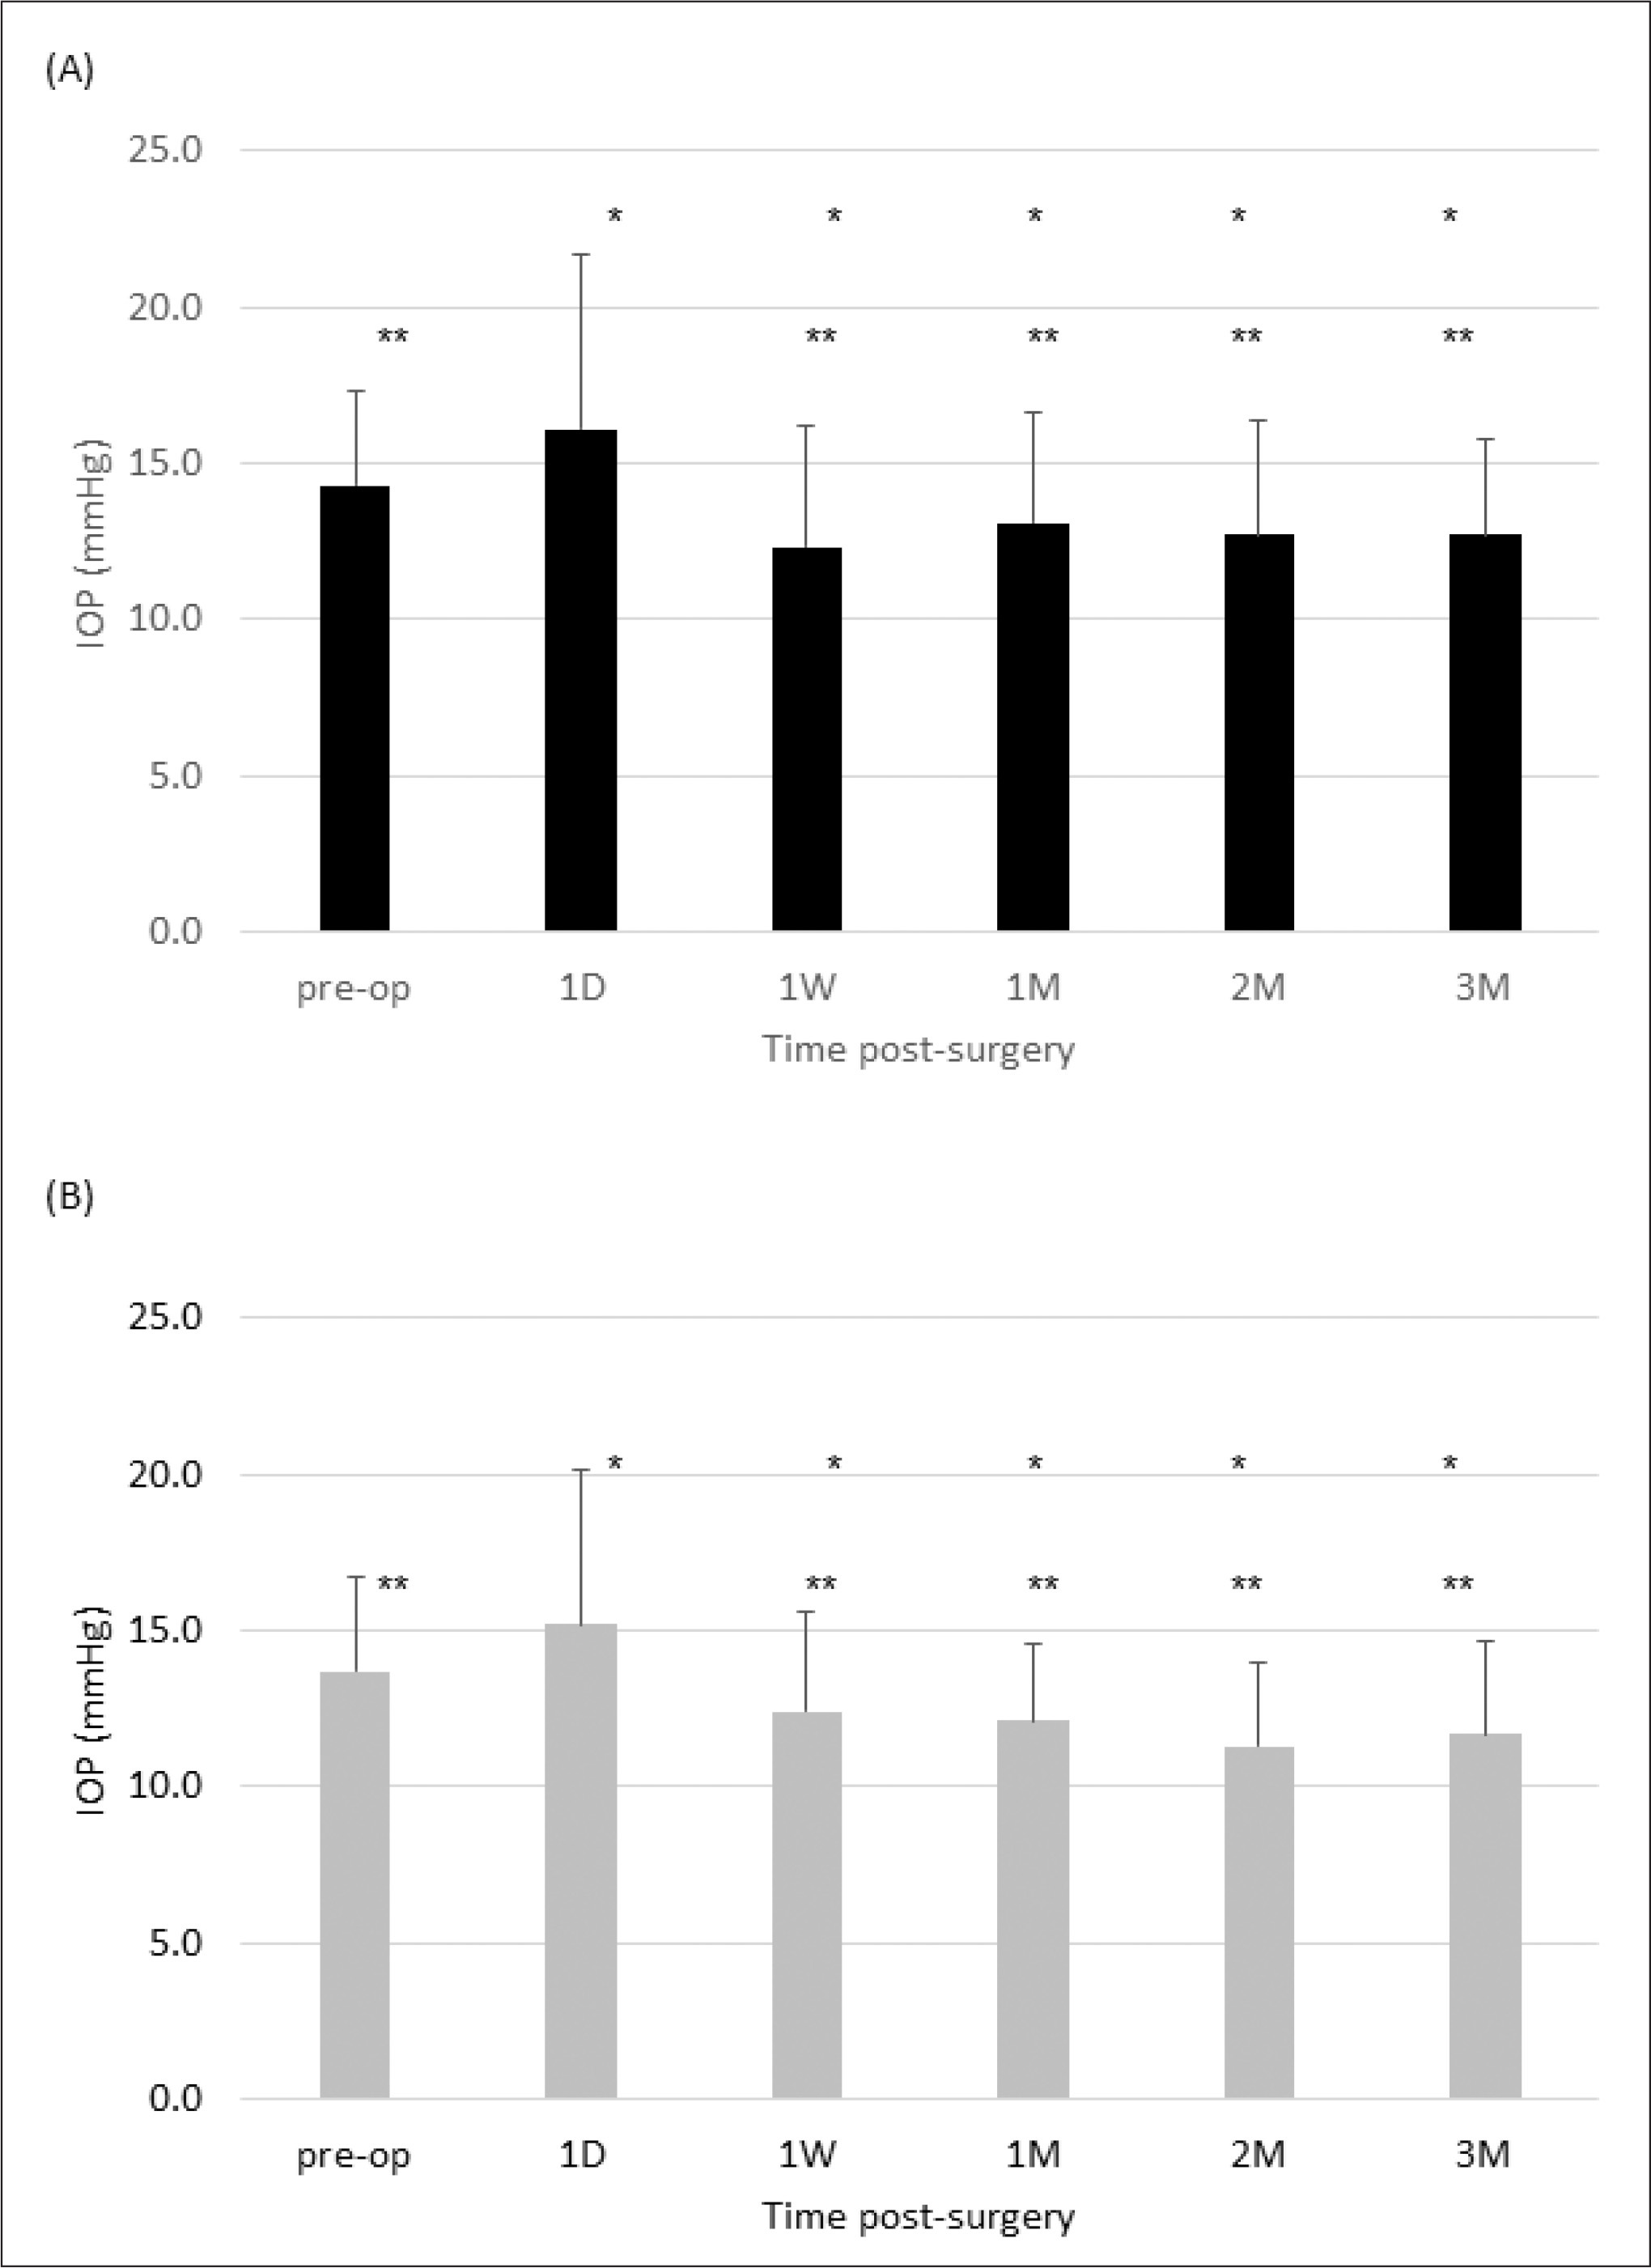 Intraocular pressure (IOP) after surgery with a (A) 2.2- or (B) 2.75-mm incision. Error bars represent standard deviations. * = P less than .05 when compared with the preoperative time period; ** = P less than .05 when compared with the 1 day postoperative time period. preop = preoperative; 1D = 1 day postoperative; 1W = 1 week postoperative; 1M = 1 month postoperative; 2M = 2 months postoperative; 3M = 3 months postoperative.